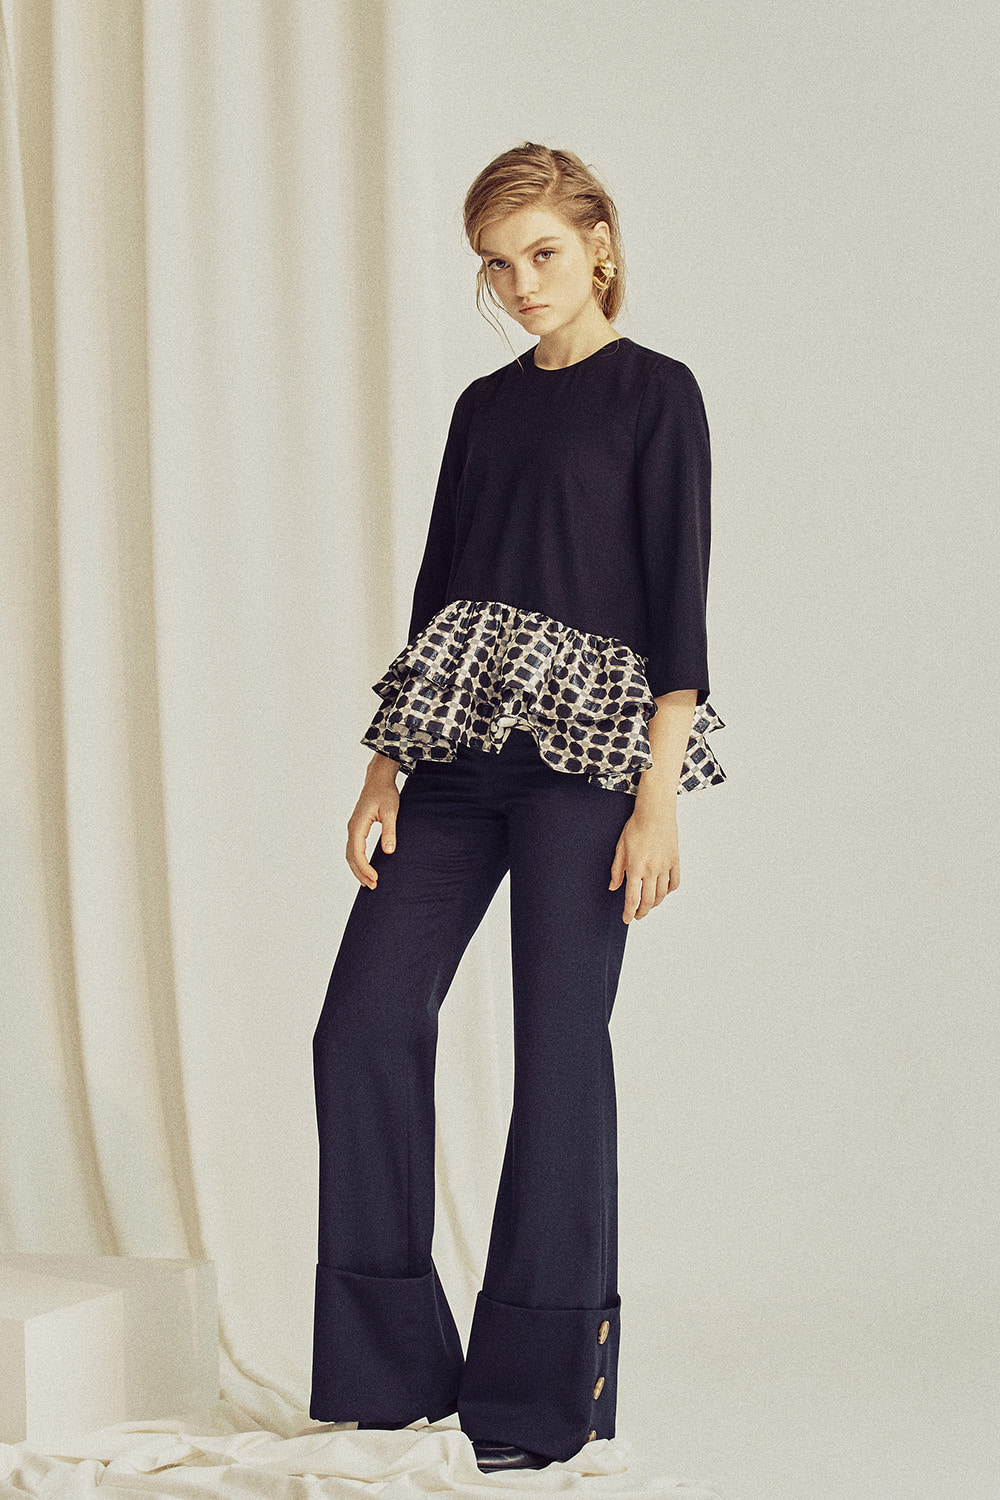 Justine button cuffed pants